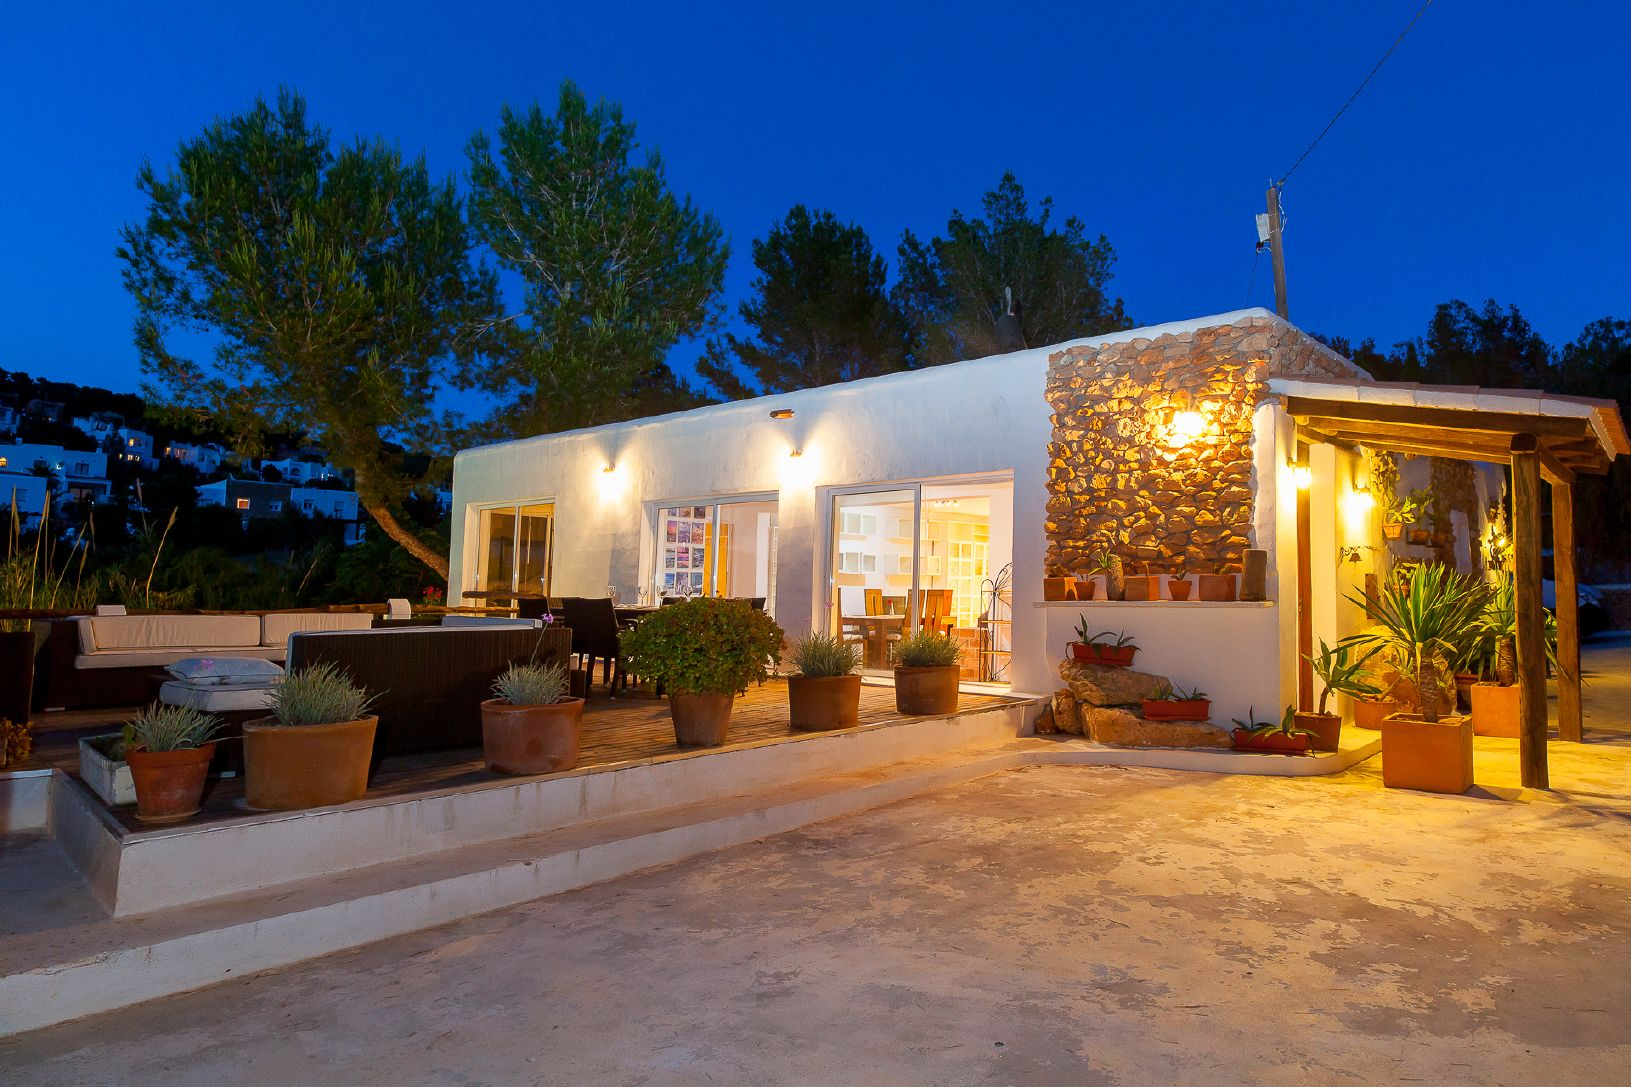 luxury rustic house at night in ibiza